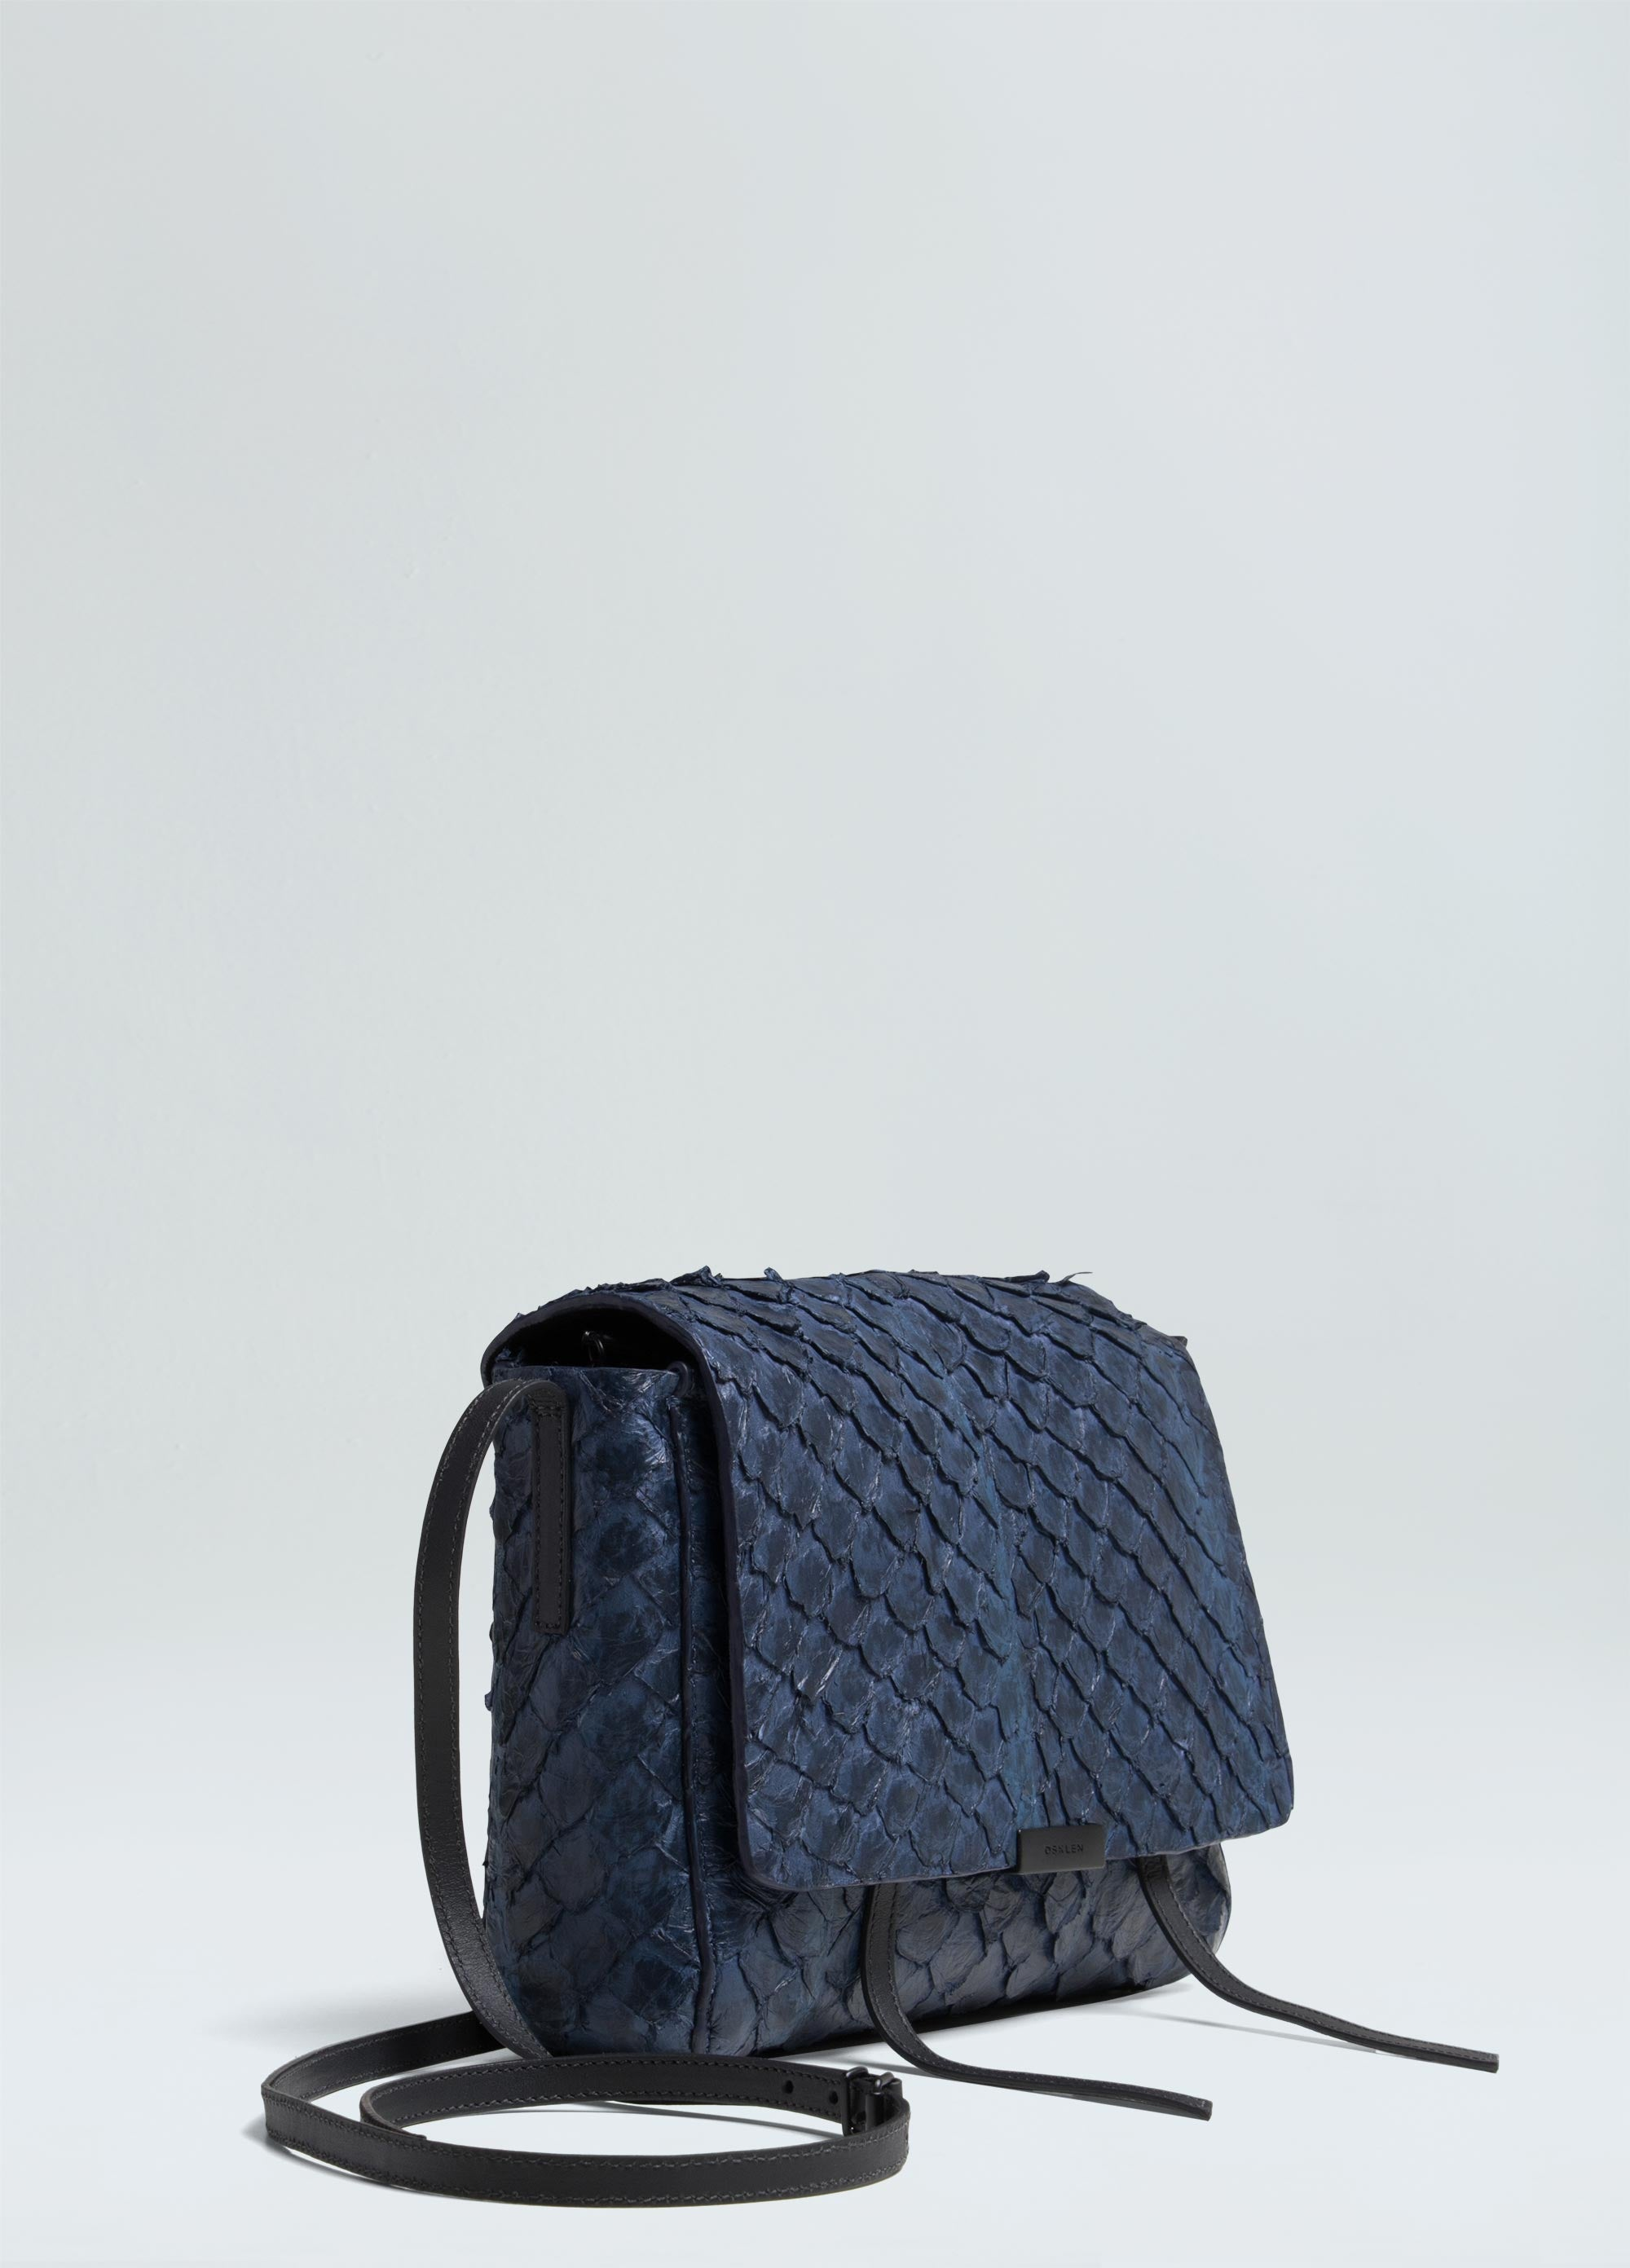 PIRARUCU FLAP SHOULDER BAG